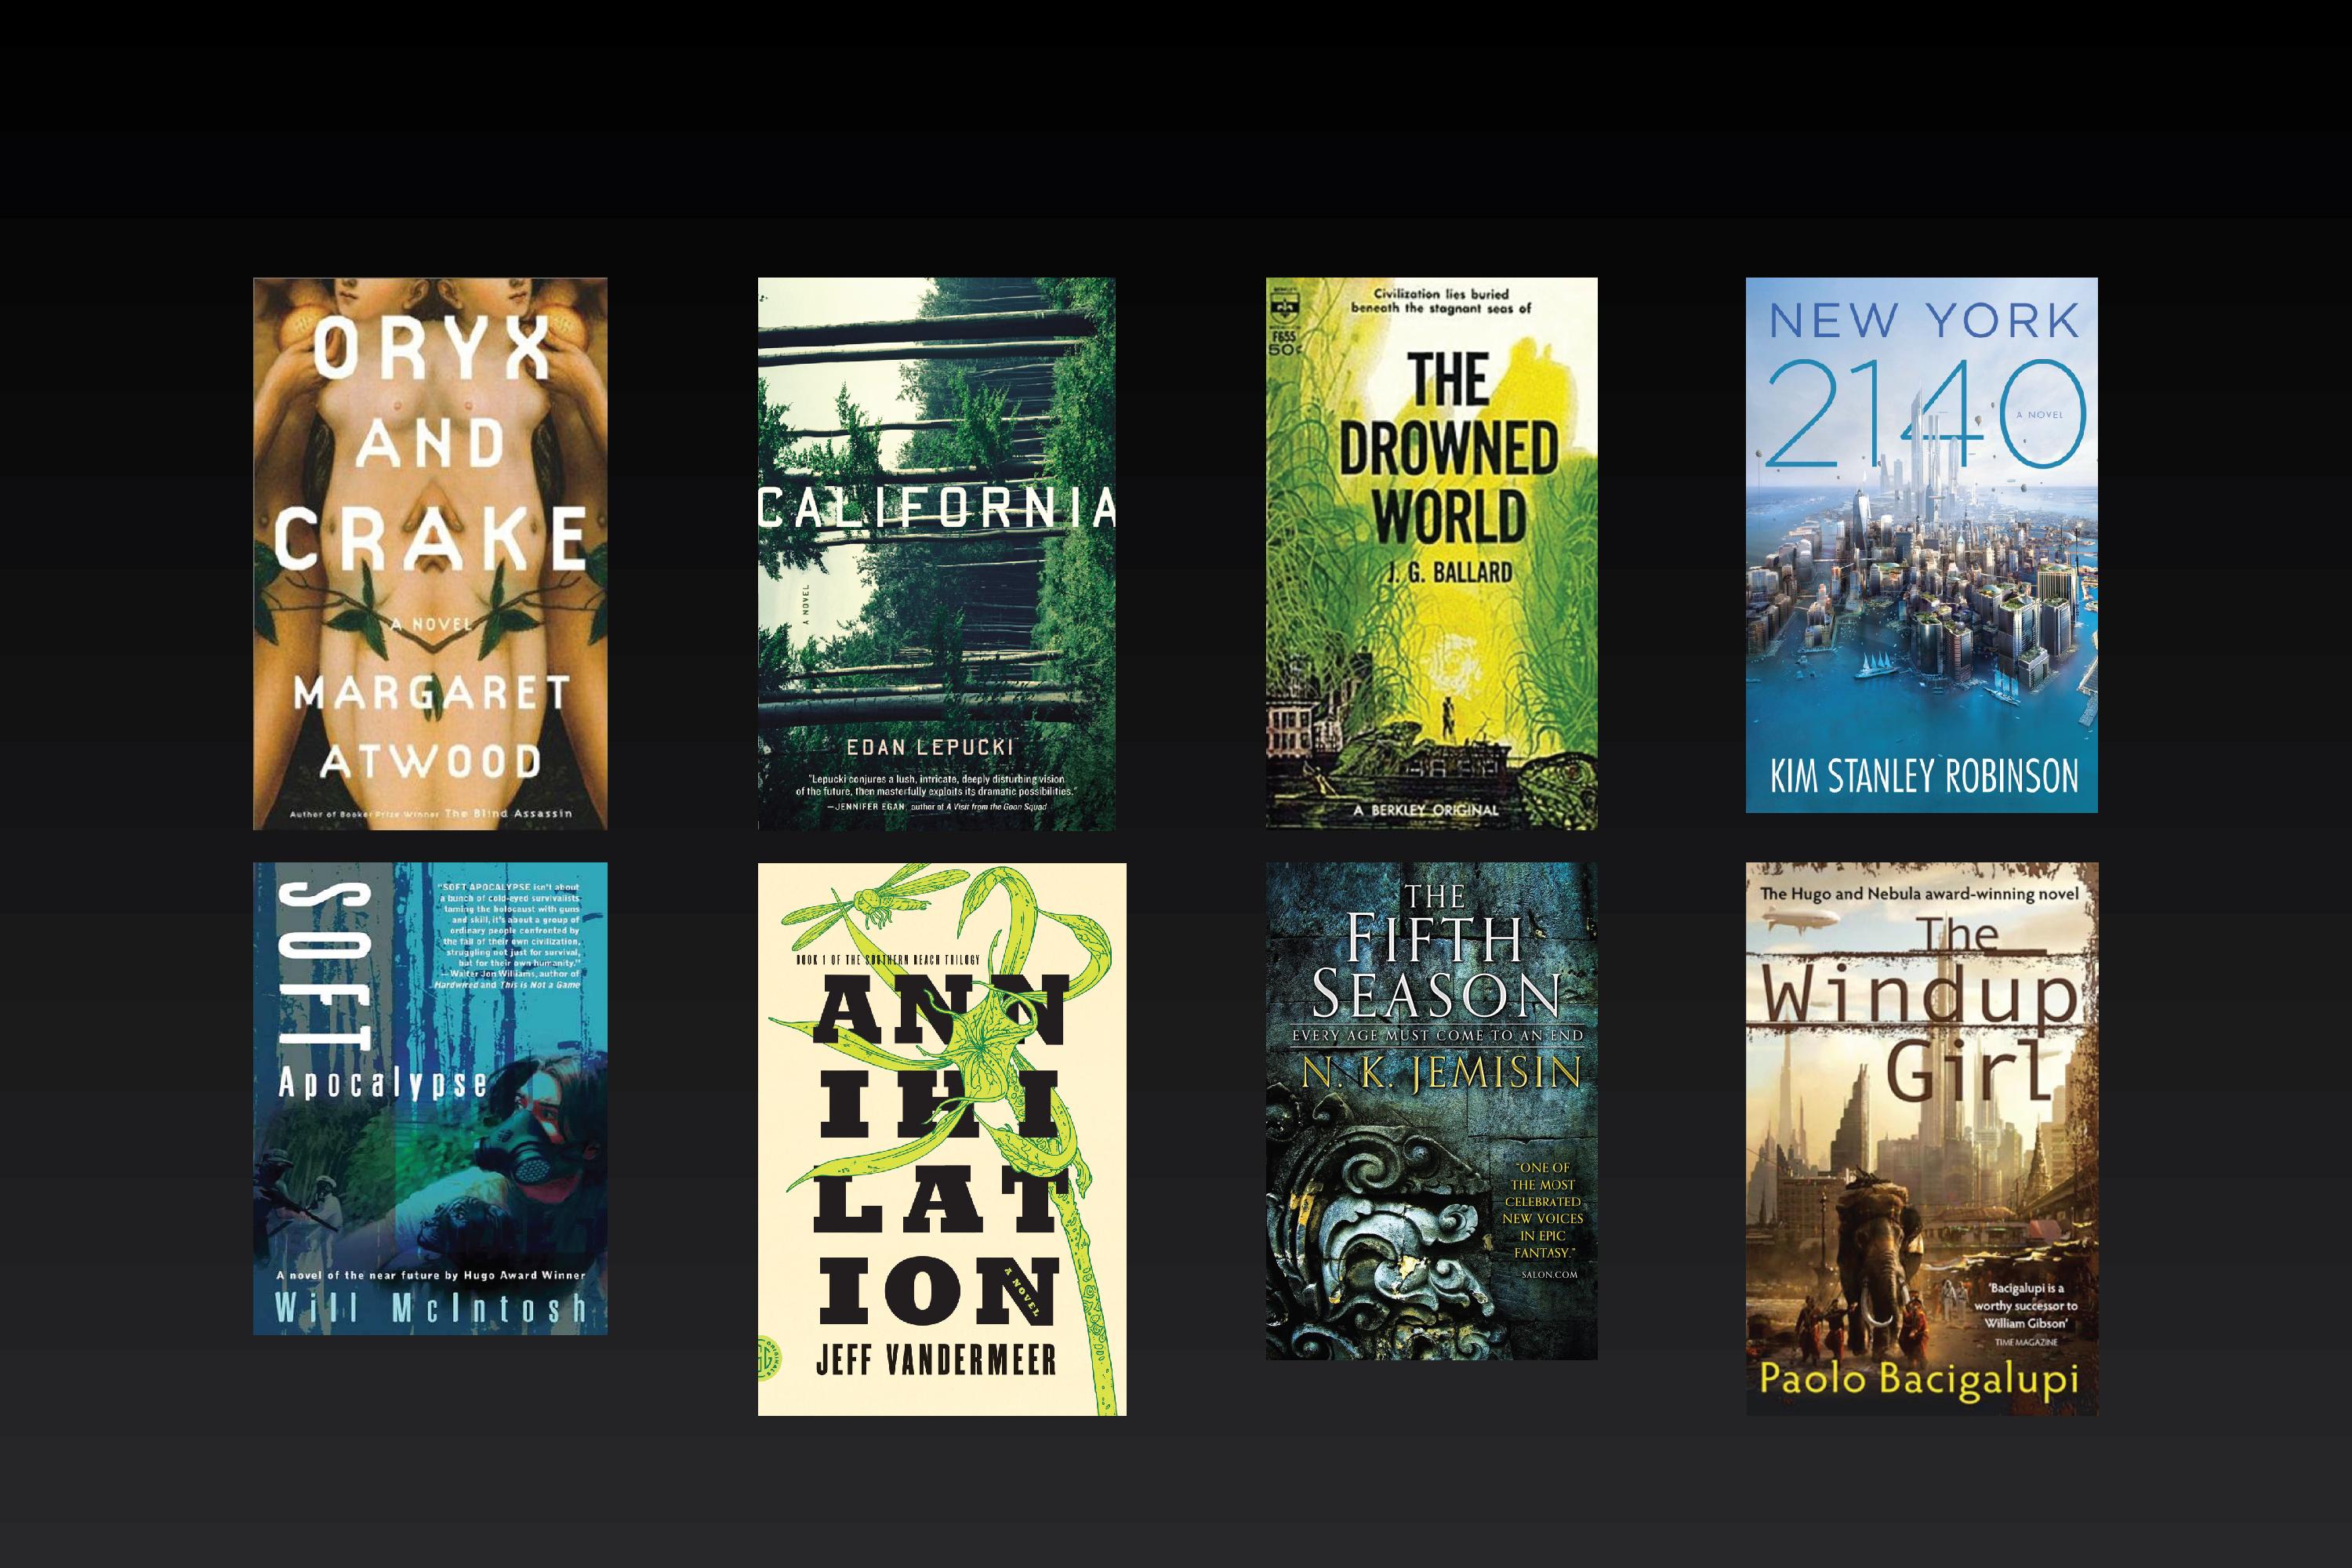 14 sci-fi books about climate change's worst case scenarios - The Verge